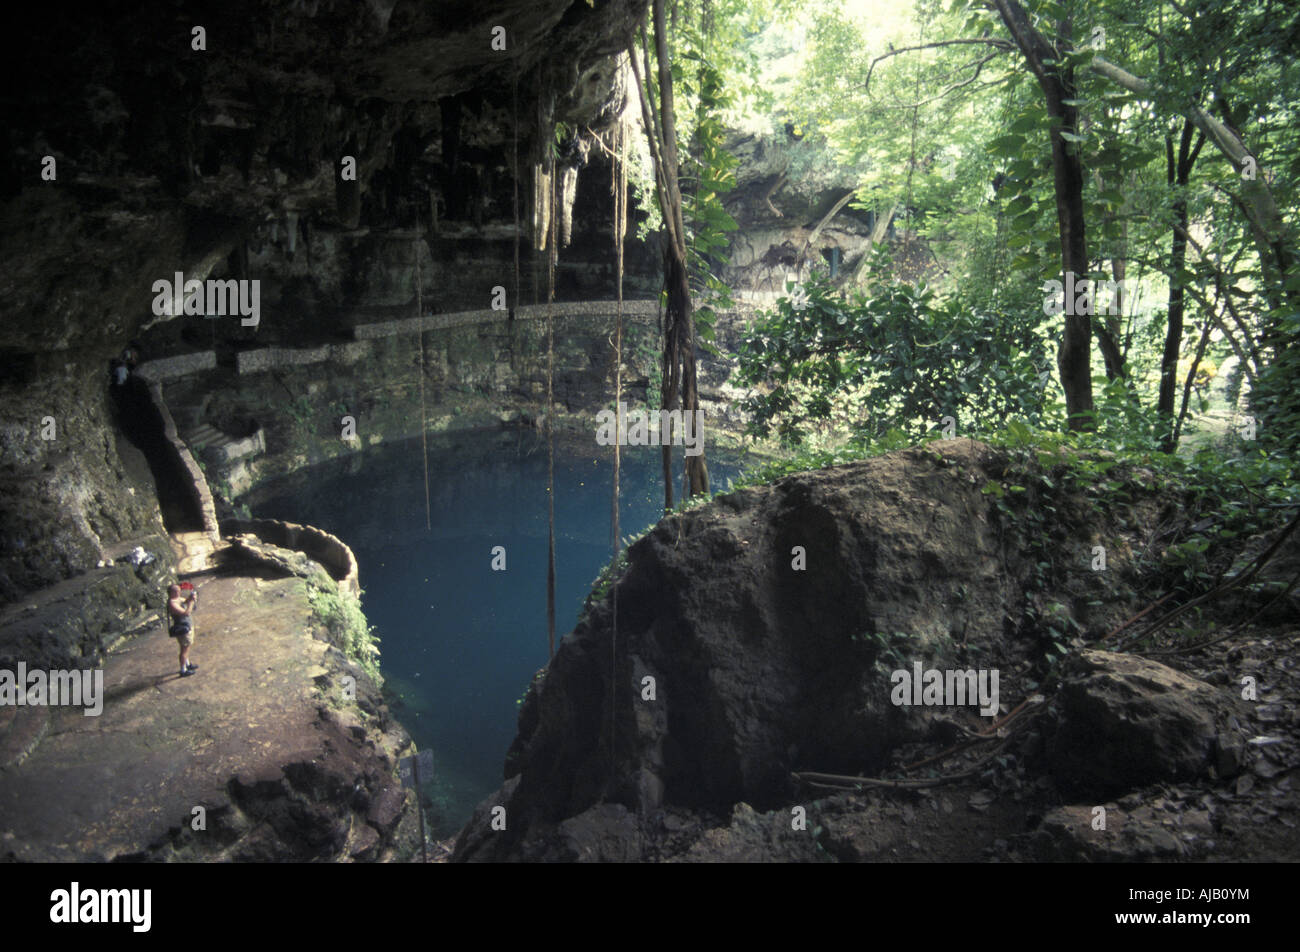 https://c7.alamy.com/comp/AJB0YM/tourist-photographing-the-the-cenote-zaci-valladolid-yucatan-mexico-AJB0YM.jpg